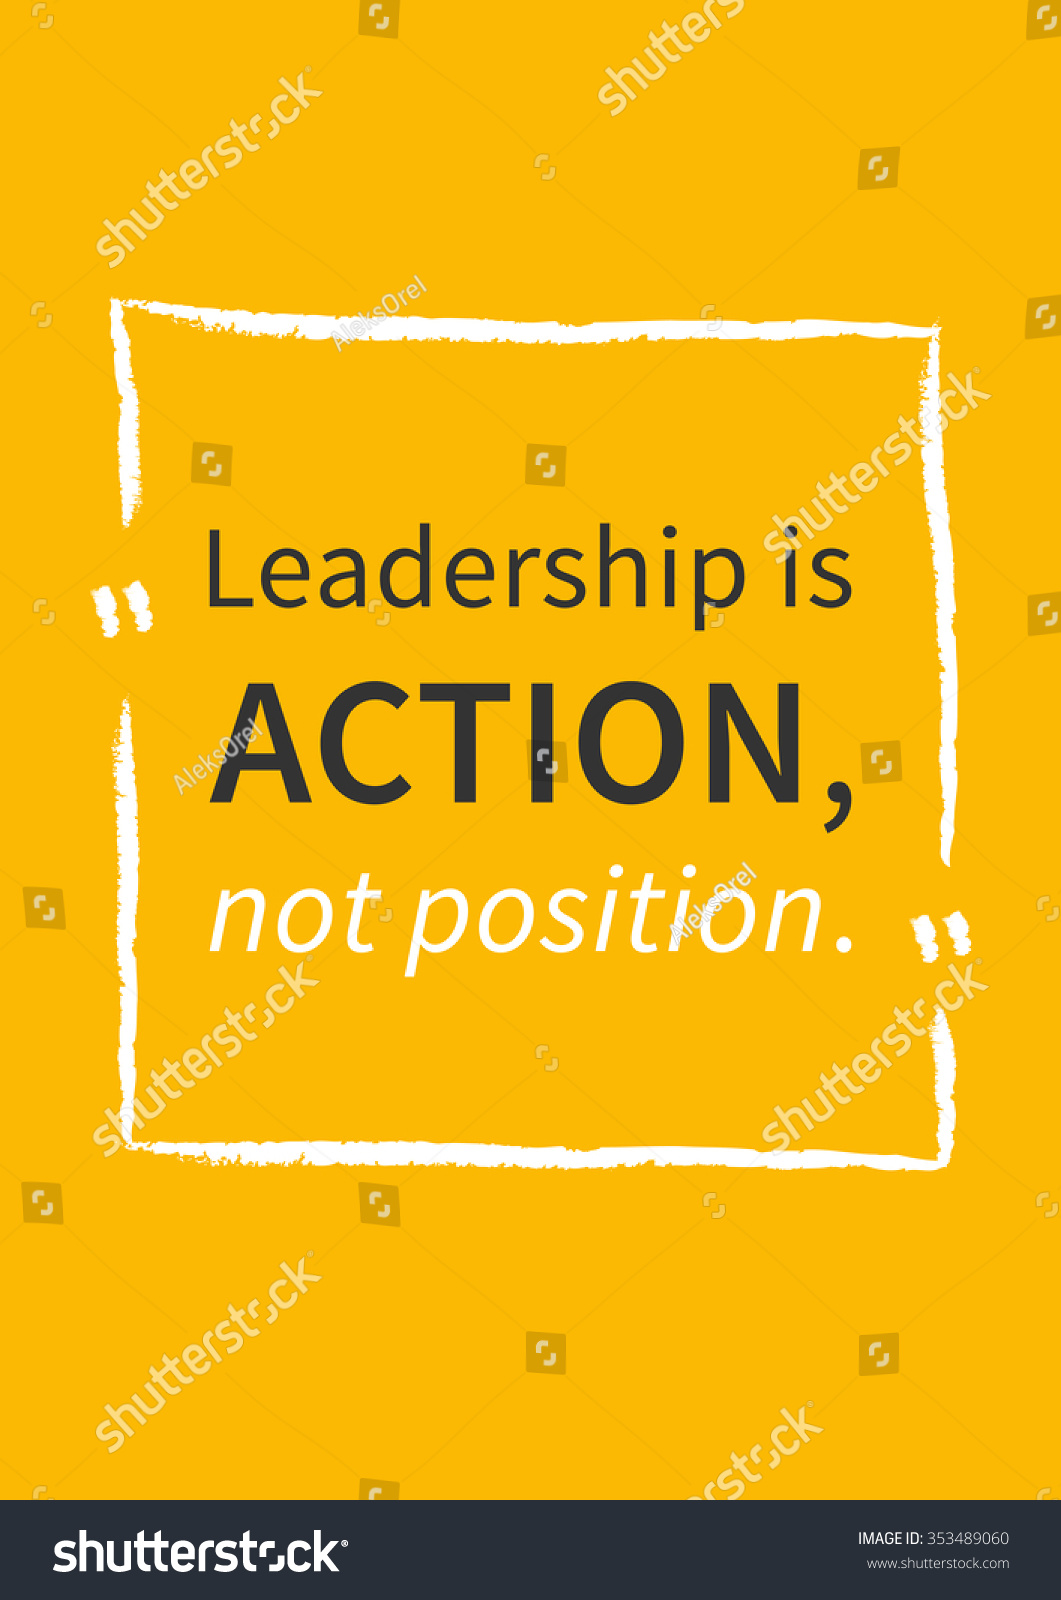 Leadership Action Not Position Inspirational Typography Stock Vector